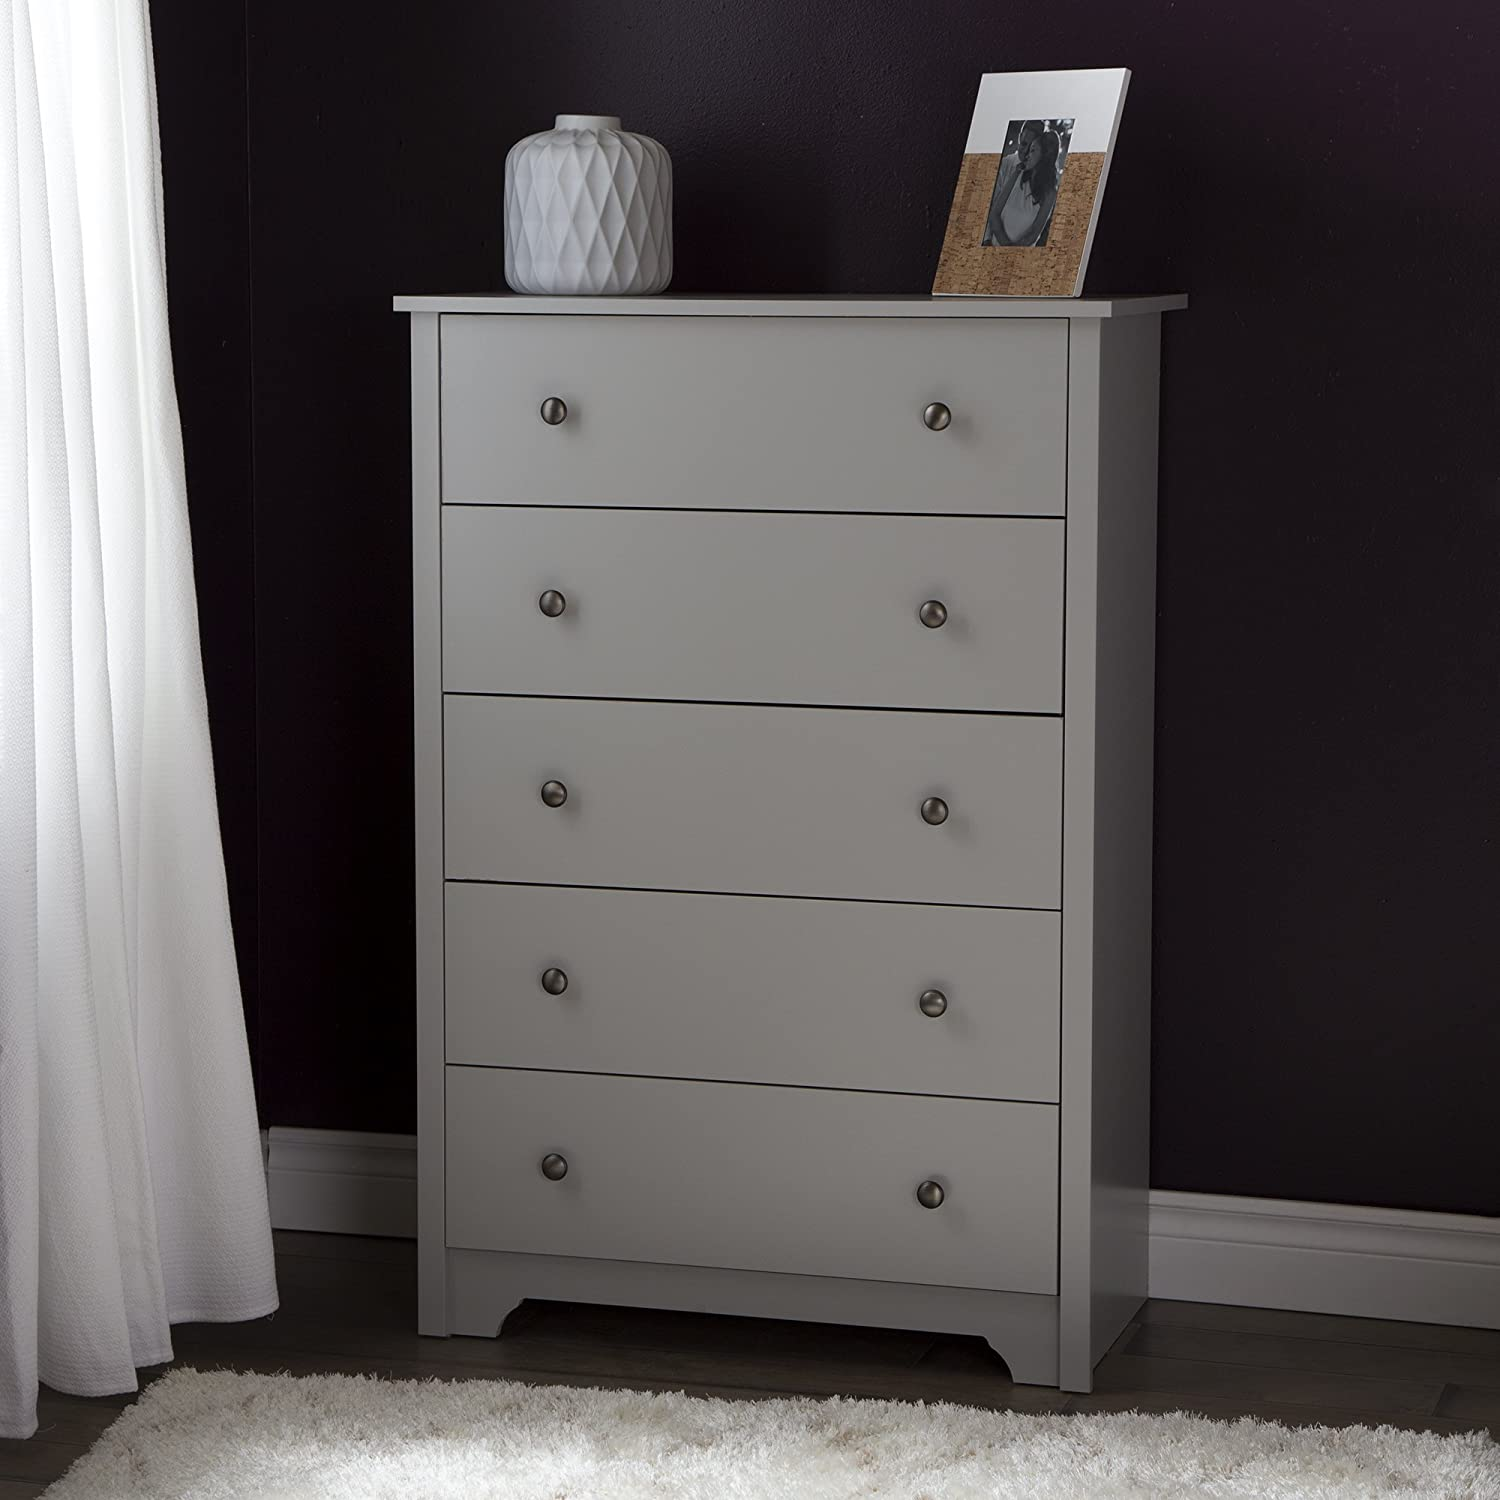 South Shore Vito 5-Drawer Chest, Soft Gray 9021035